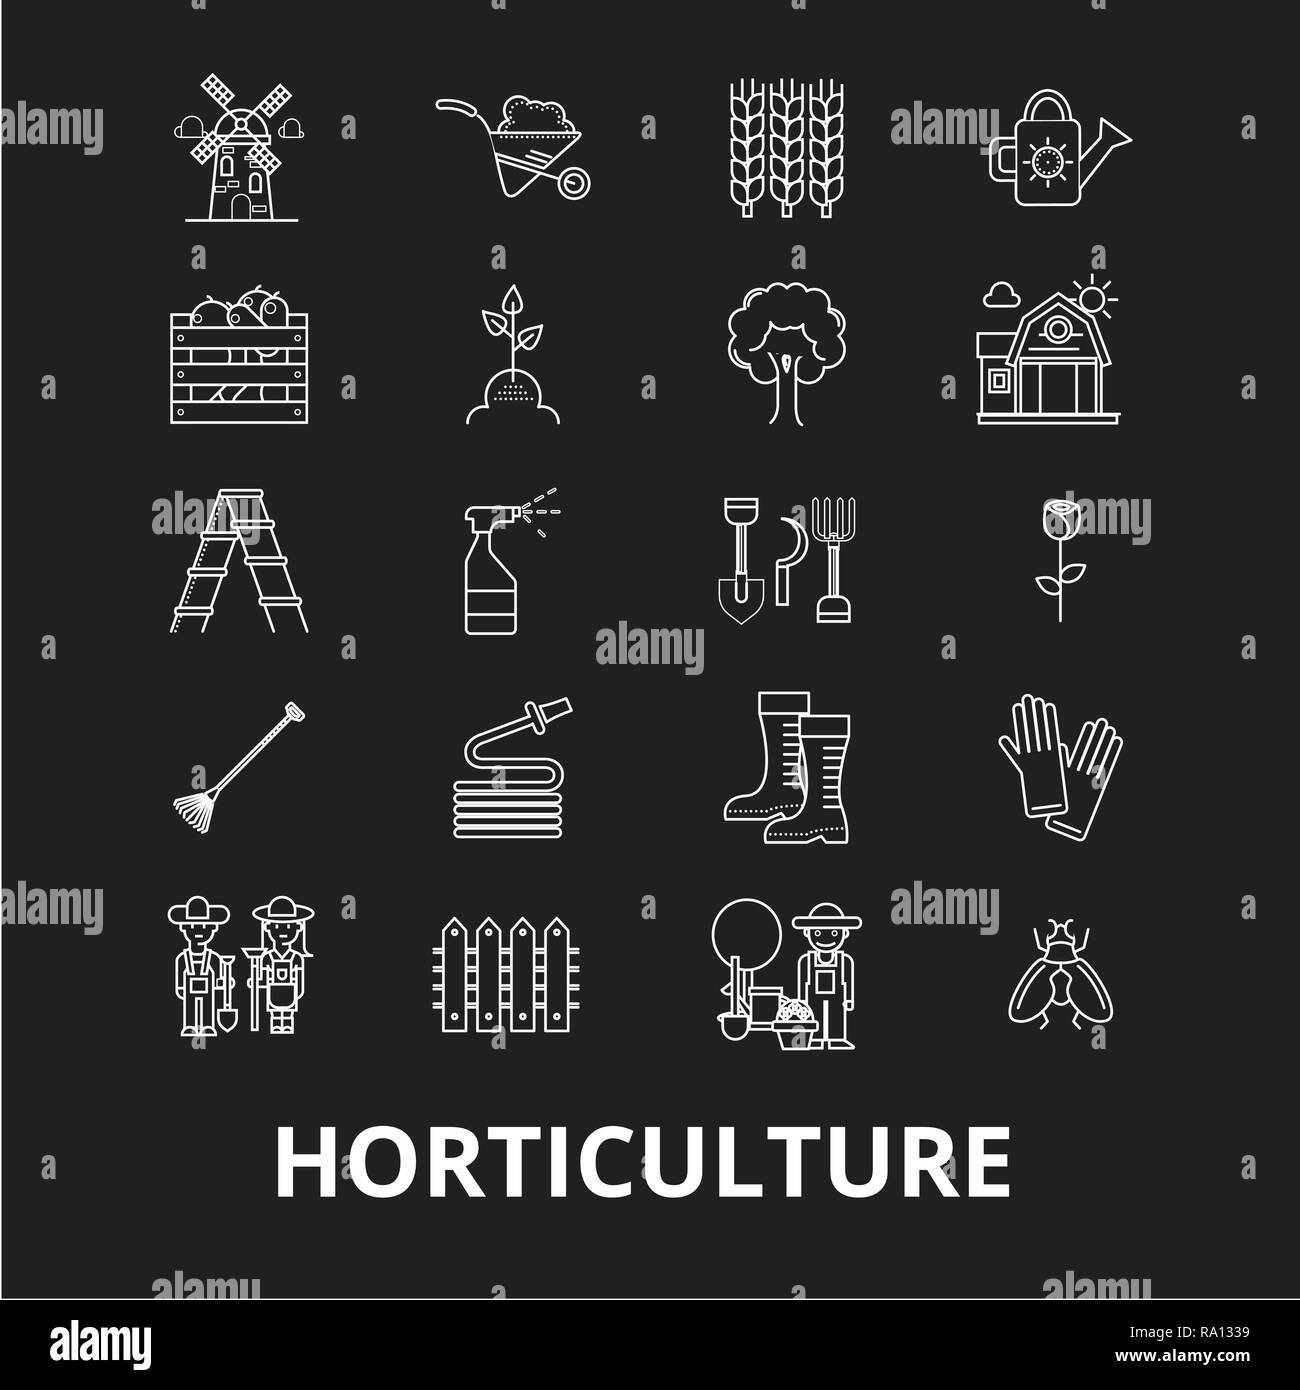 Horticulture editable line icons vector set on black background. Horticulture white outline illustrations, signs, symbols Stock Vector